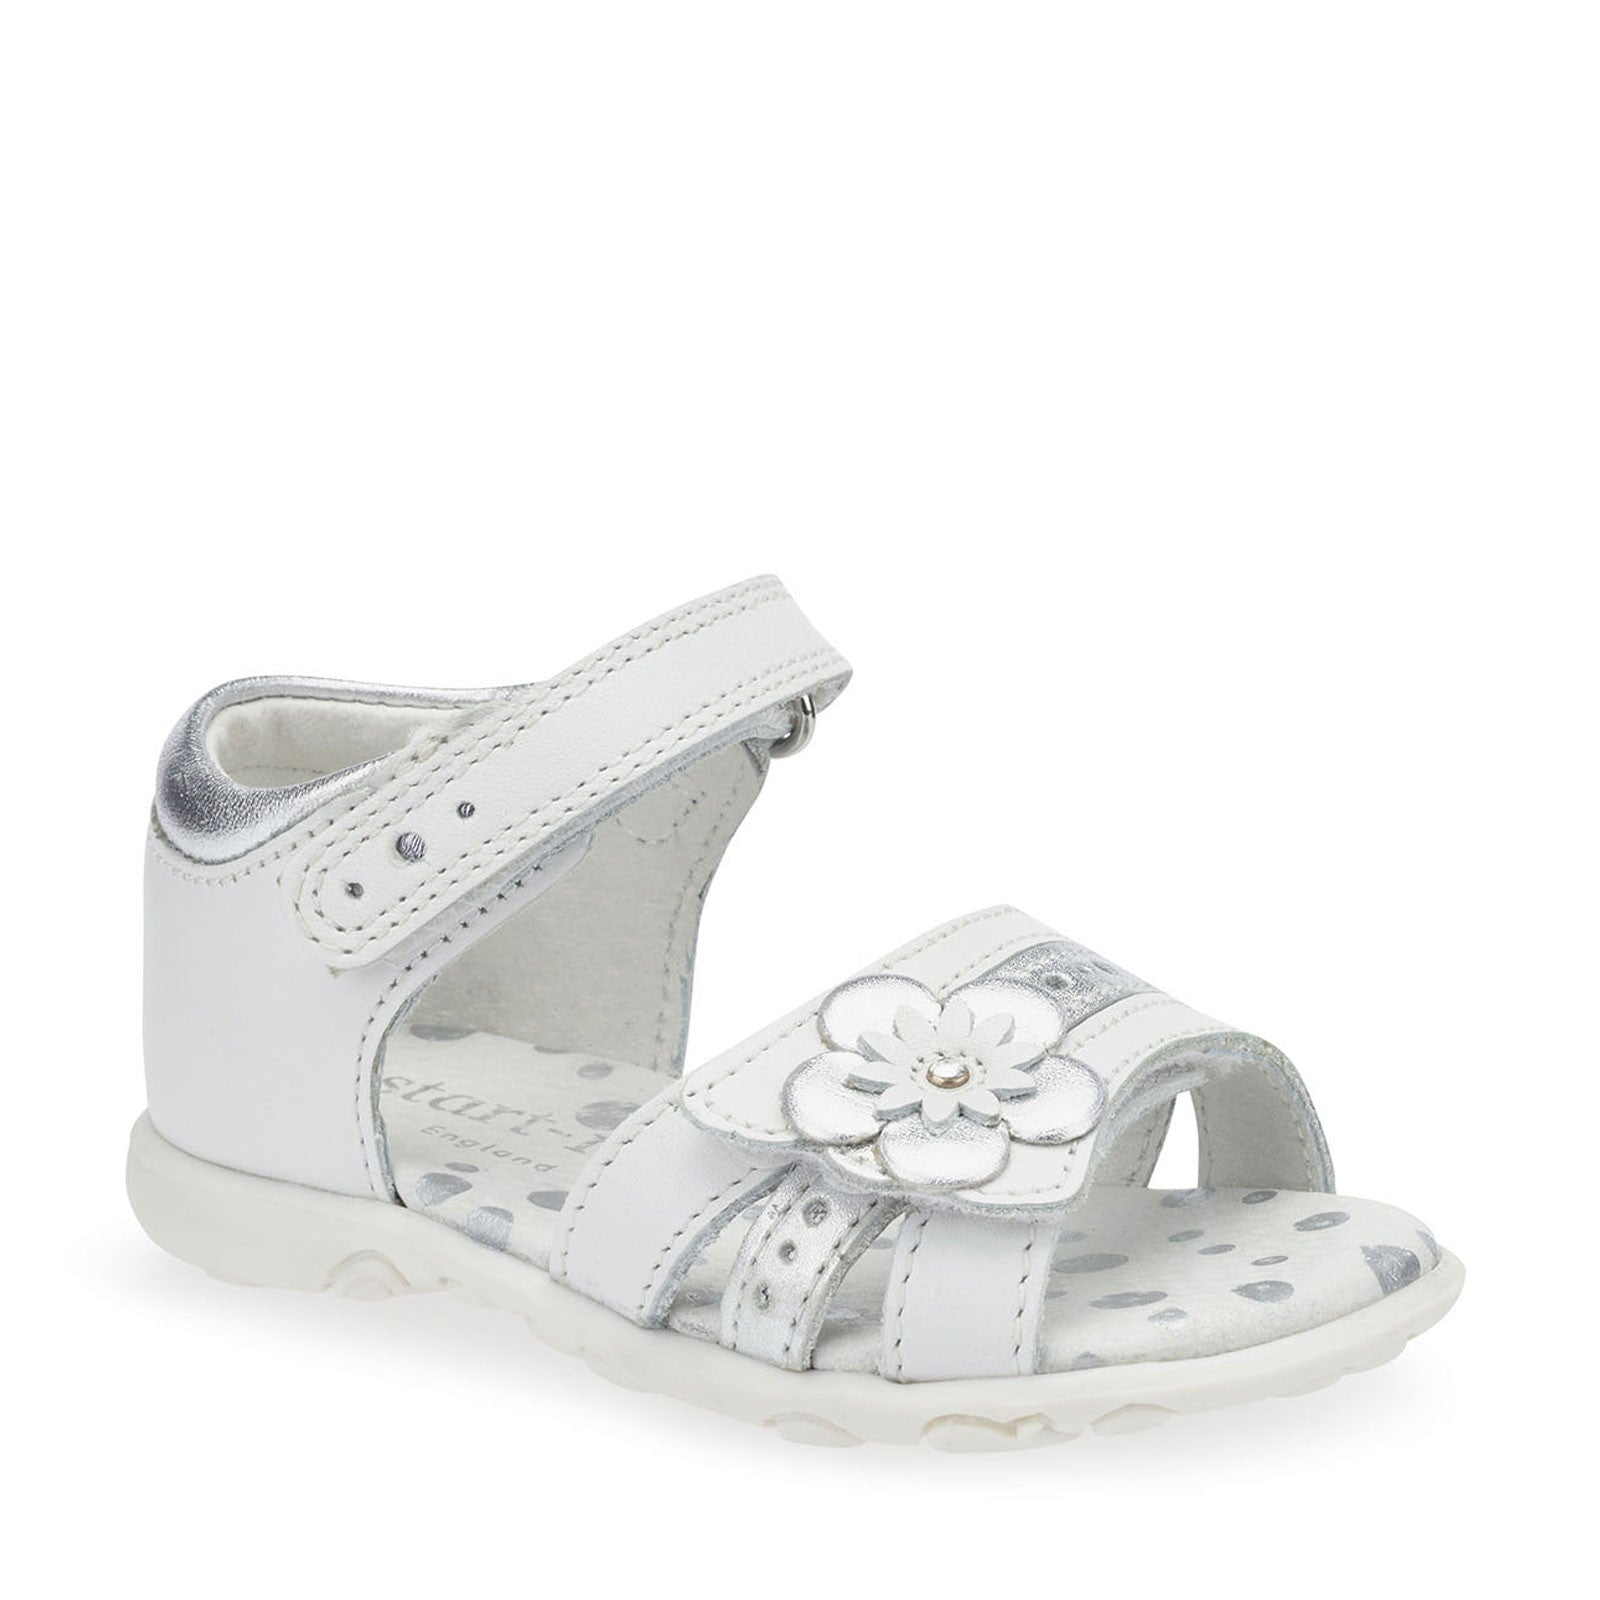 59c75118a40d9 NEW Start Rite Phoebe White/Silver Leather